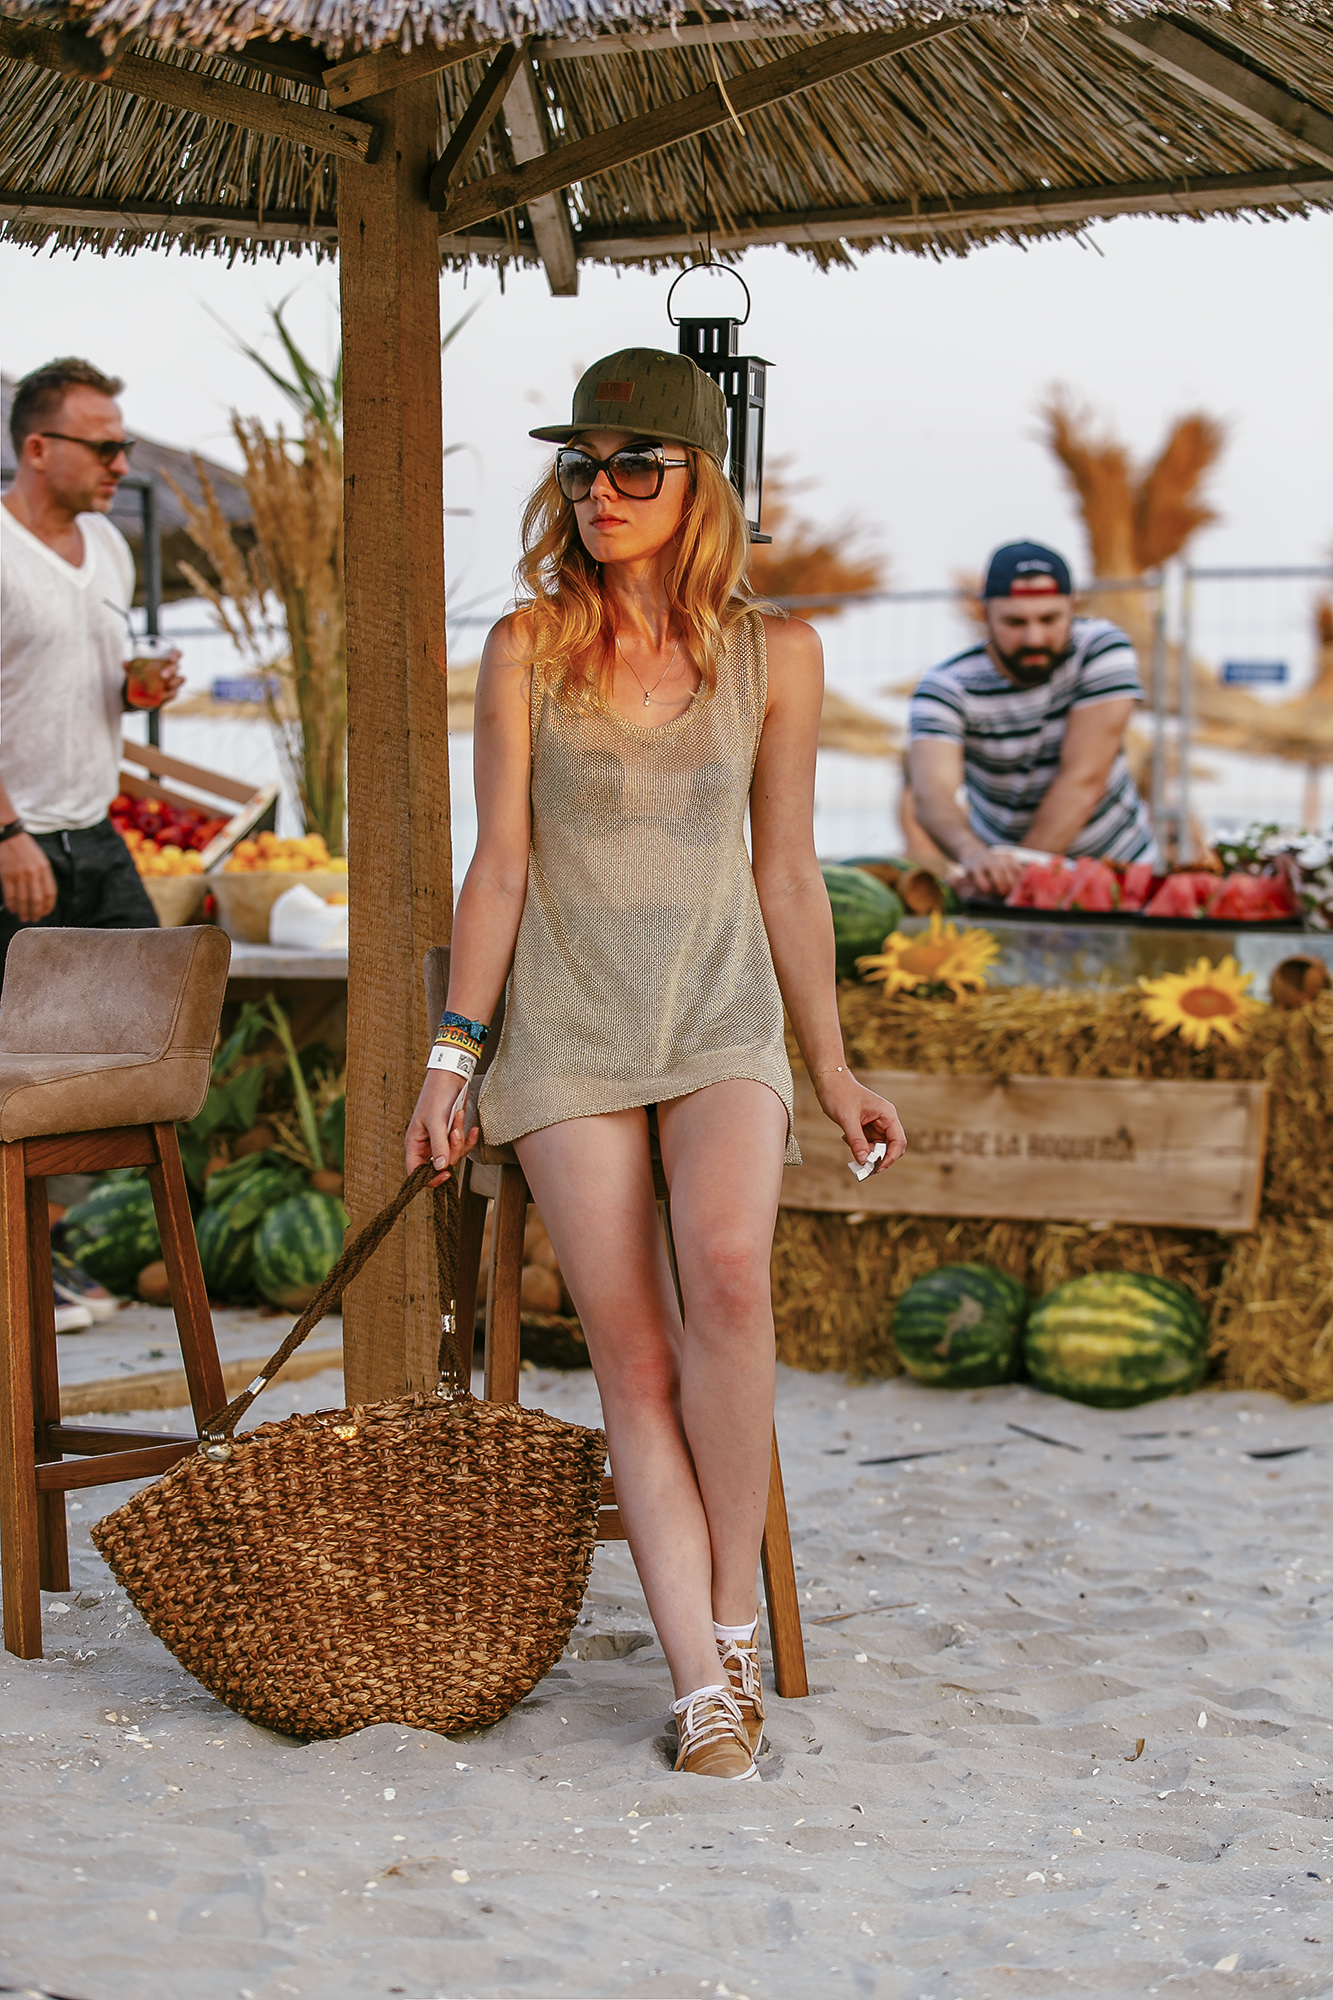 # festivalchic From Dunhill Taste Makers Sunset Festival